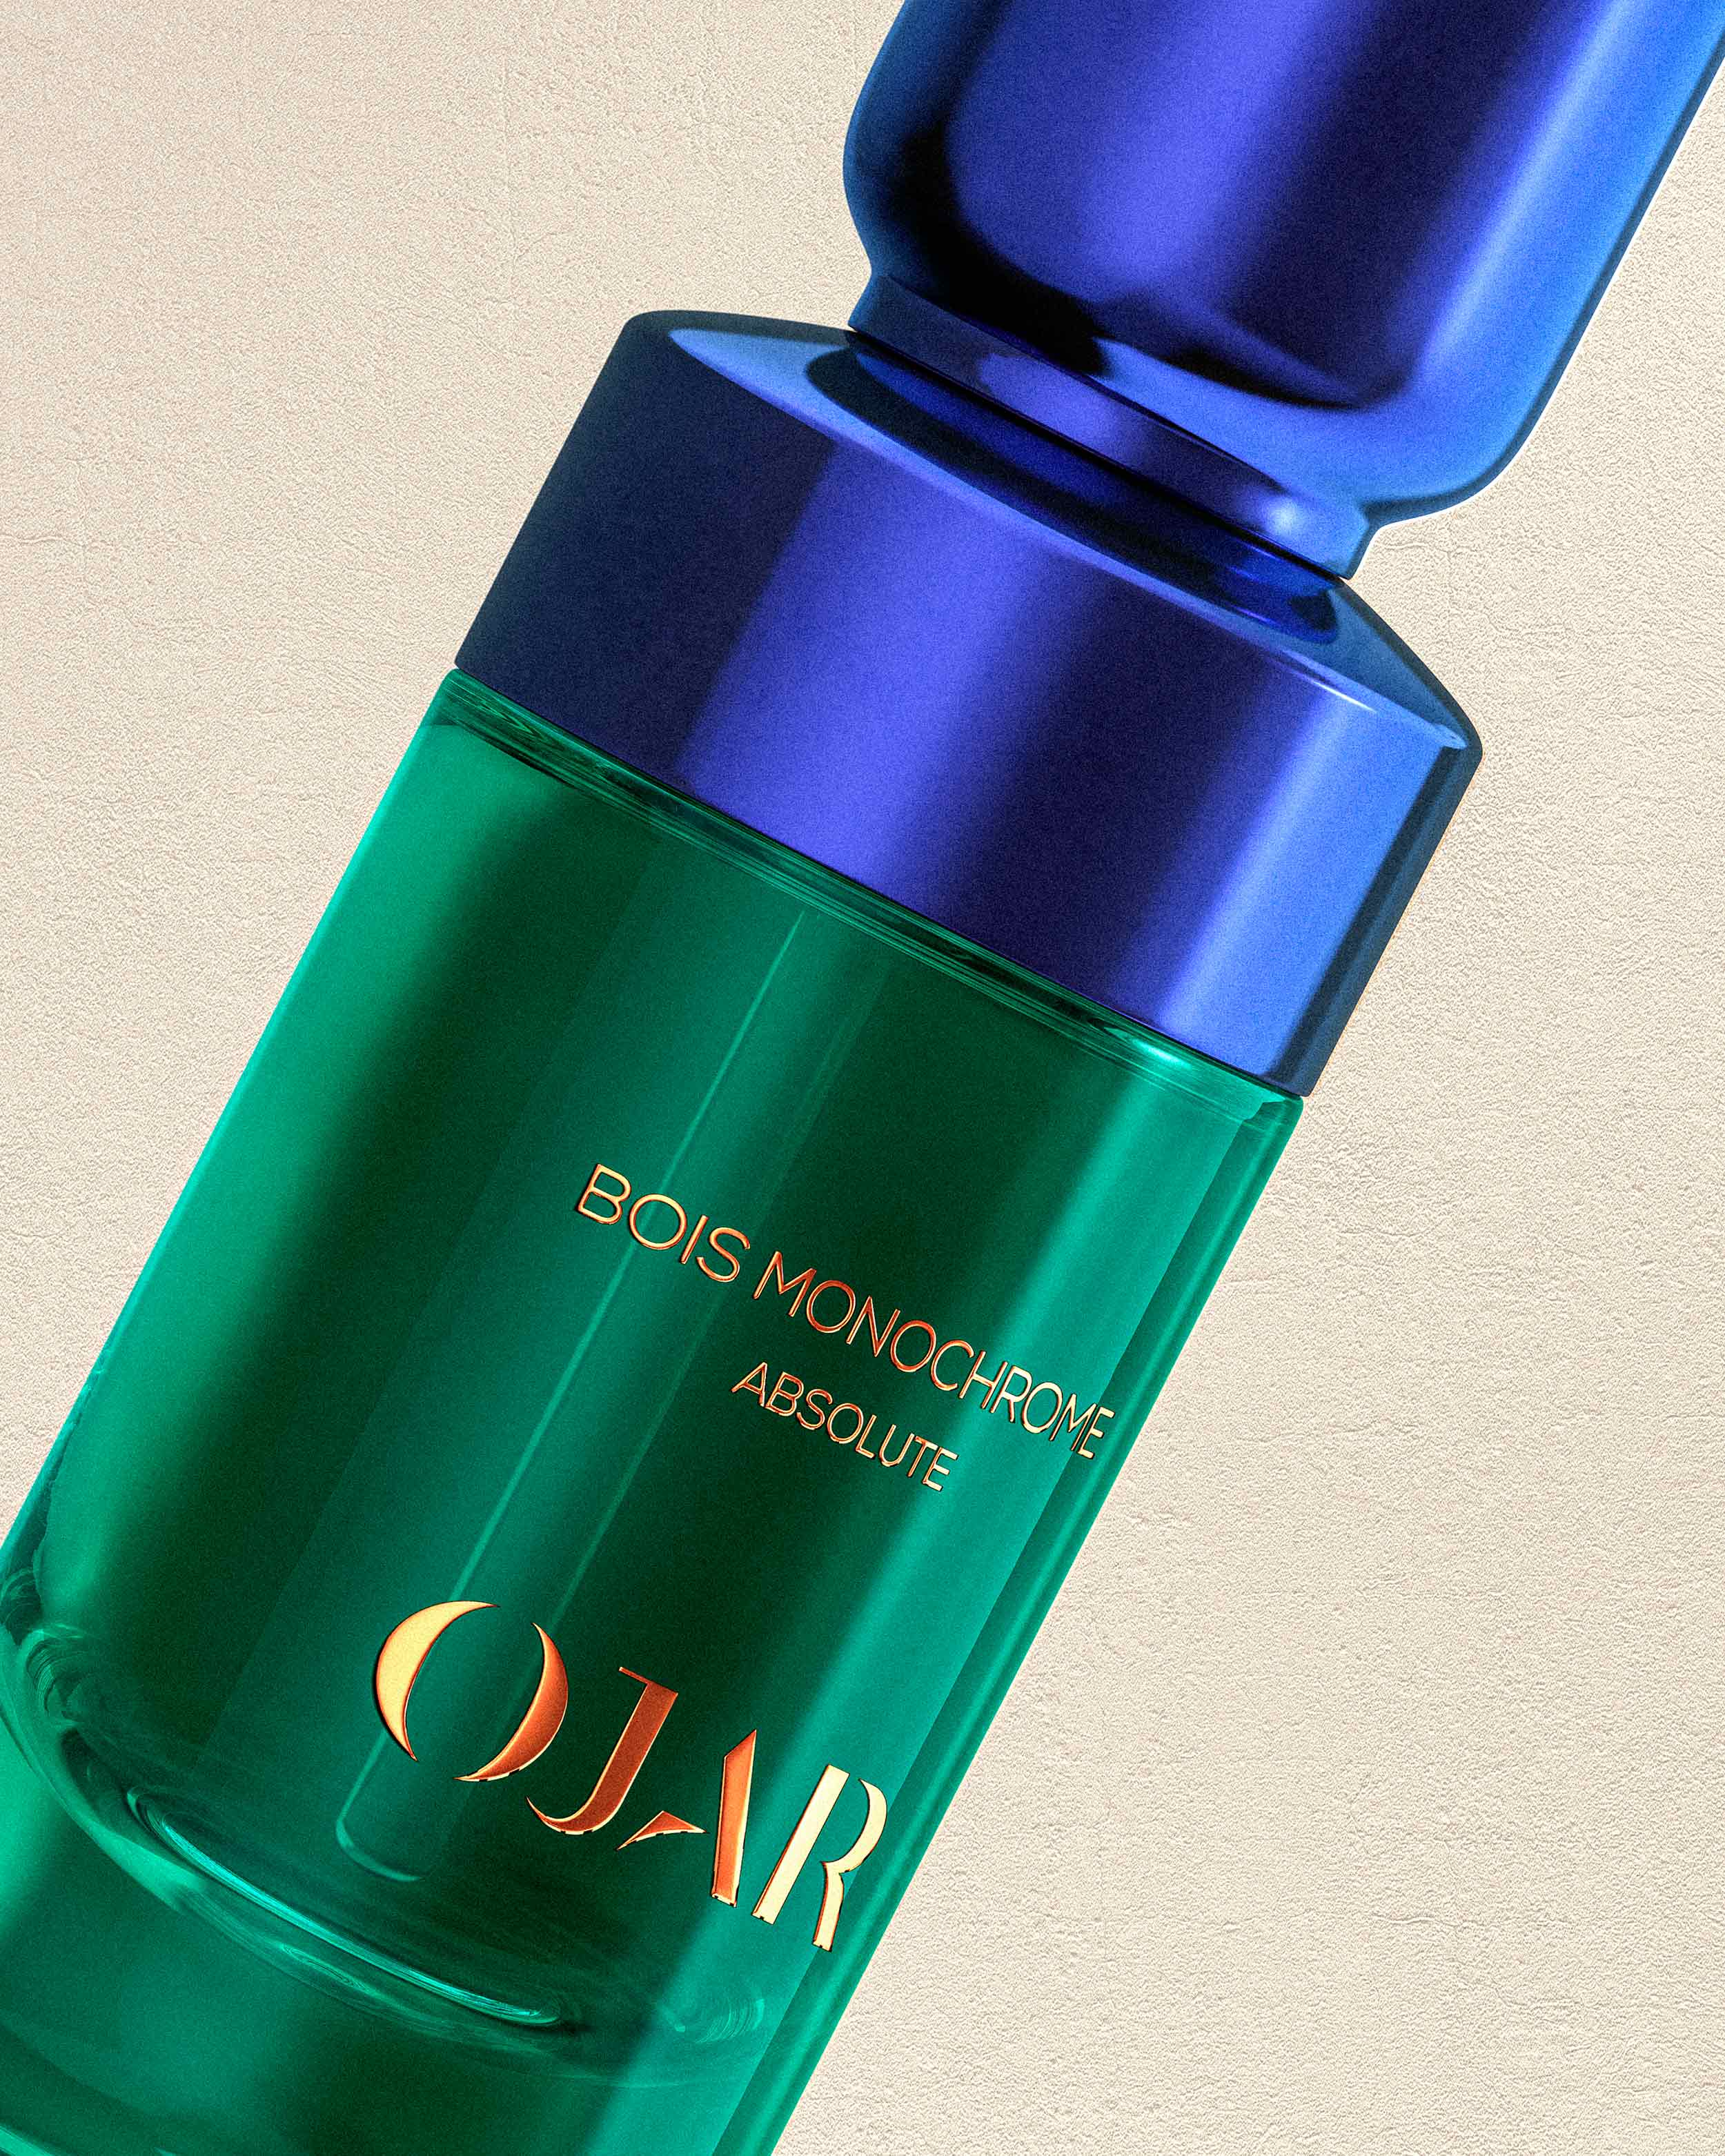 OJAR Absolute Bois Monochrome Perfume Close Up